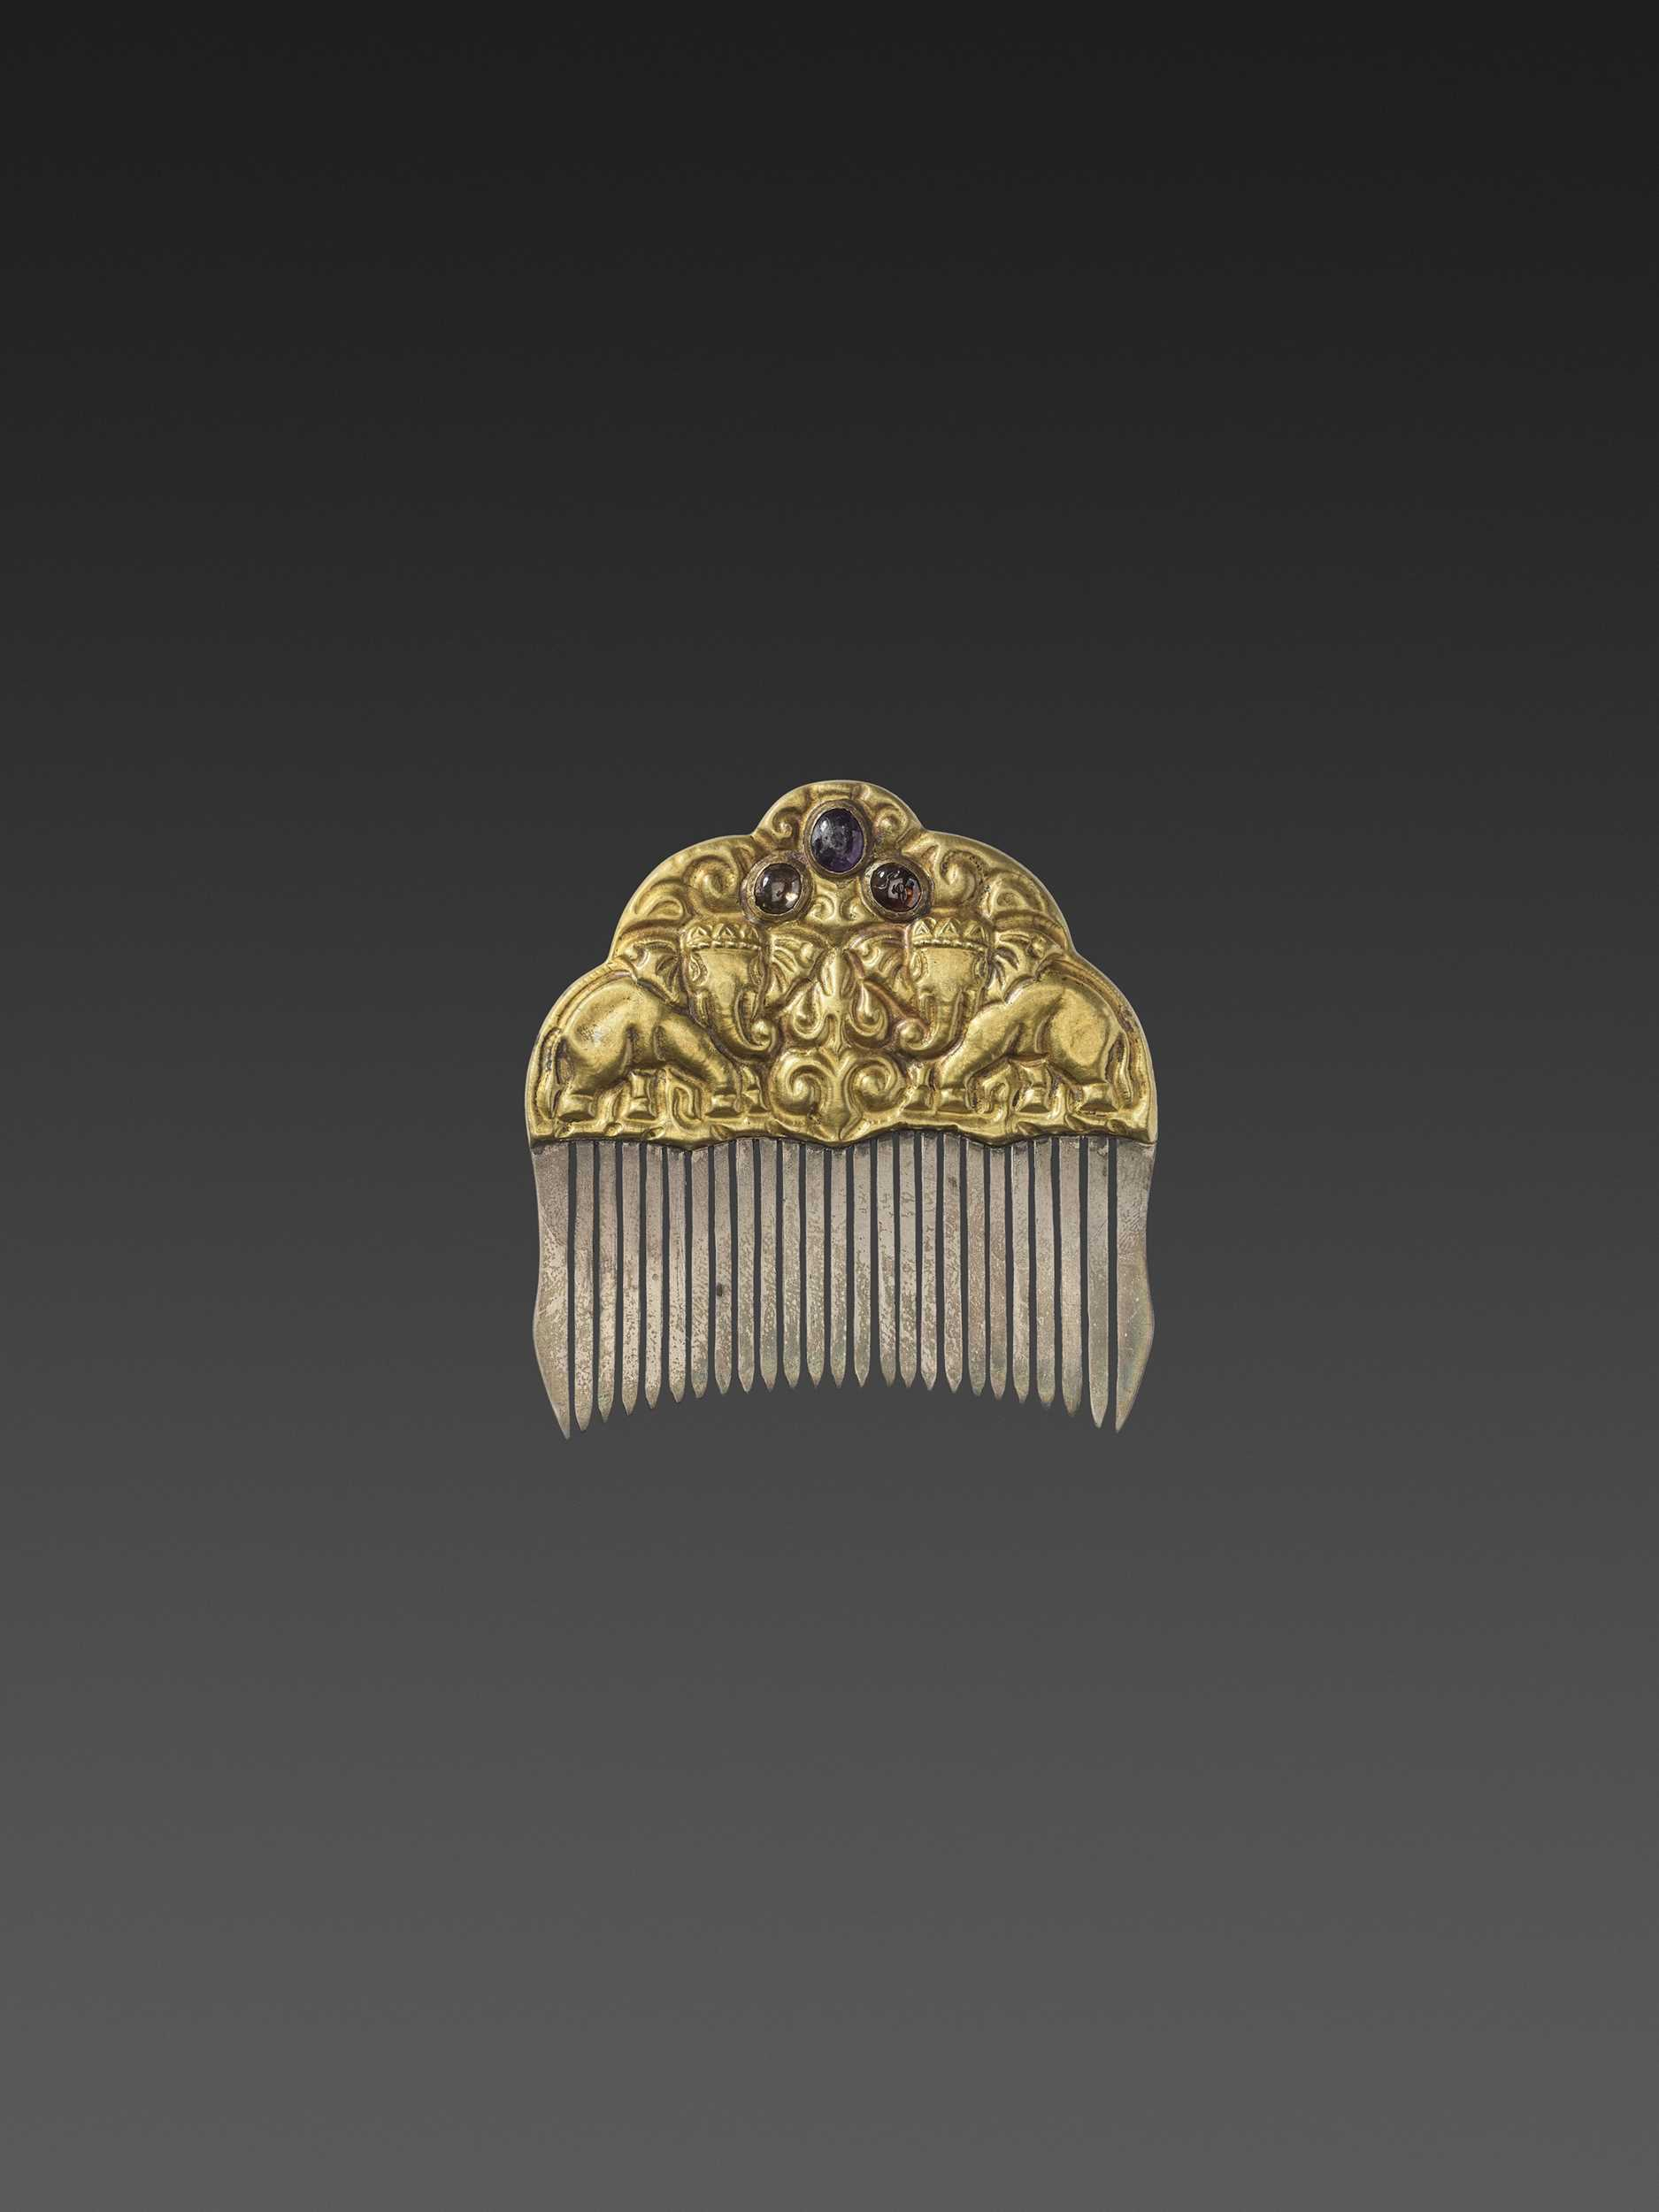 A CHAM GEMSTONE-SET GOLD REPOUSSÉ AND SILVER HAIR COMB WITH ROYAL ELEPHANTS